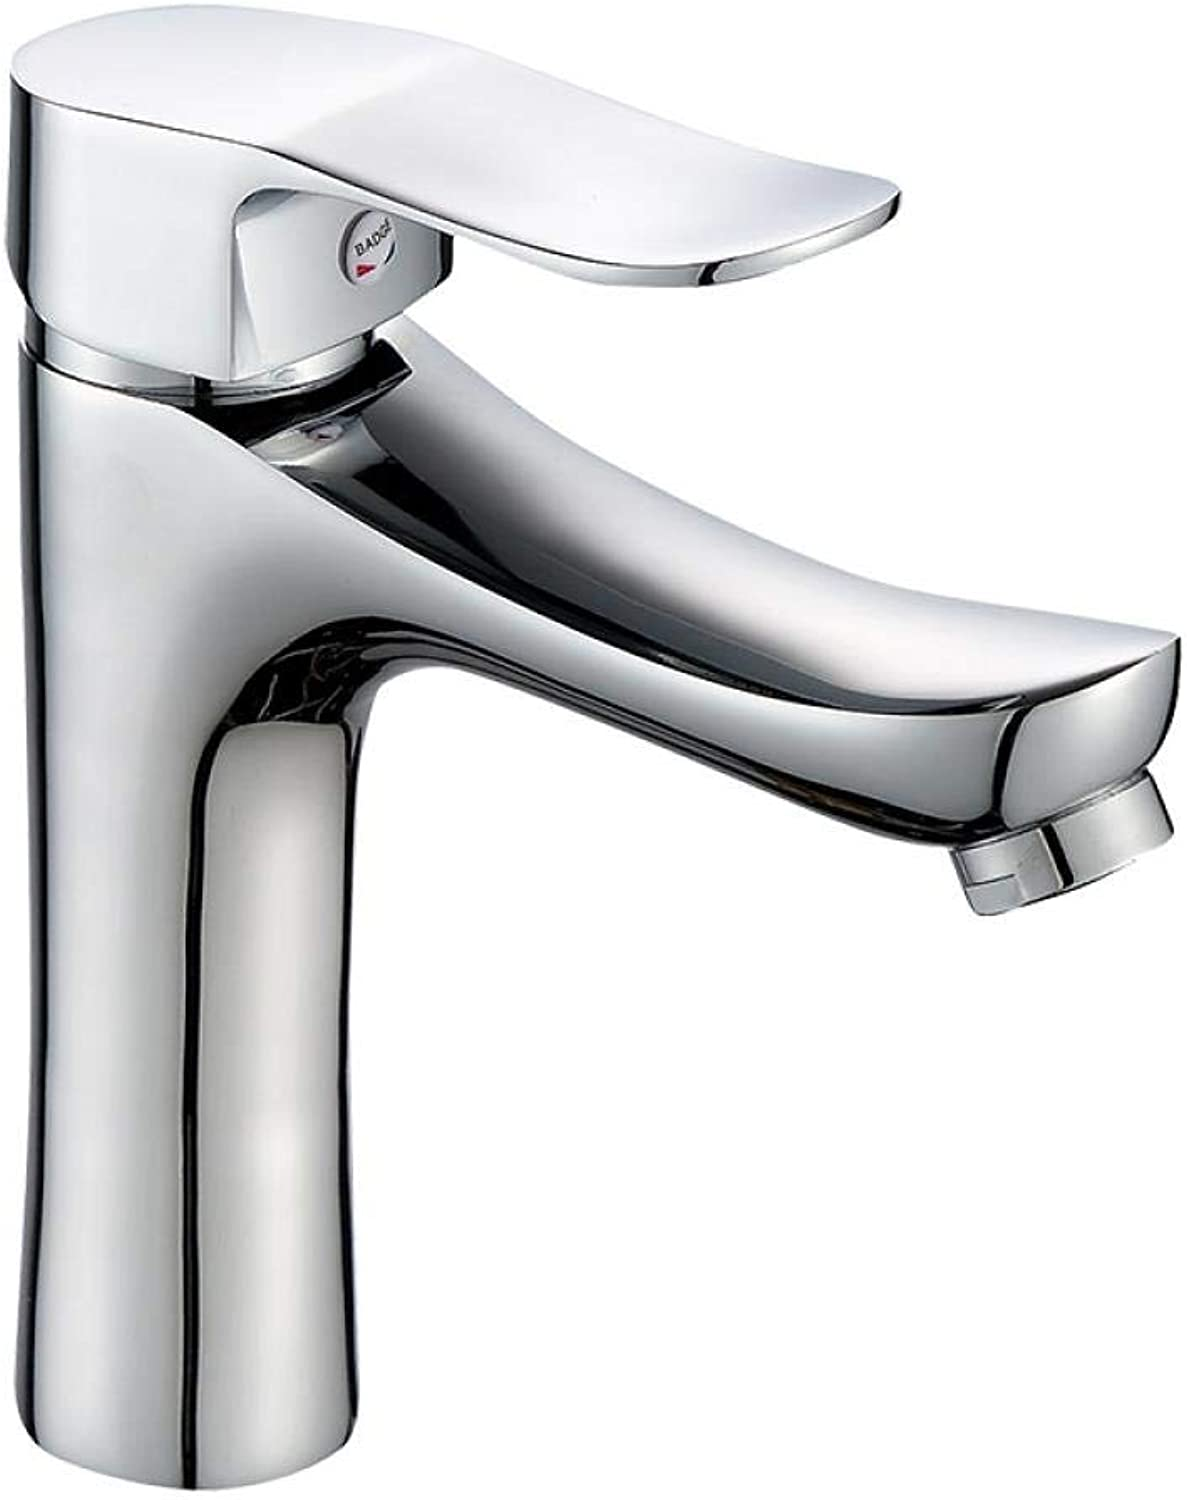 Copper Hot and Cold Single Handle Single Hole Bathroom Washbasin Mixer Z407